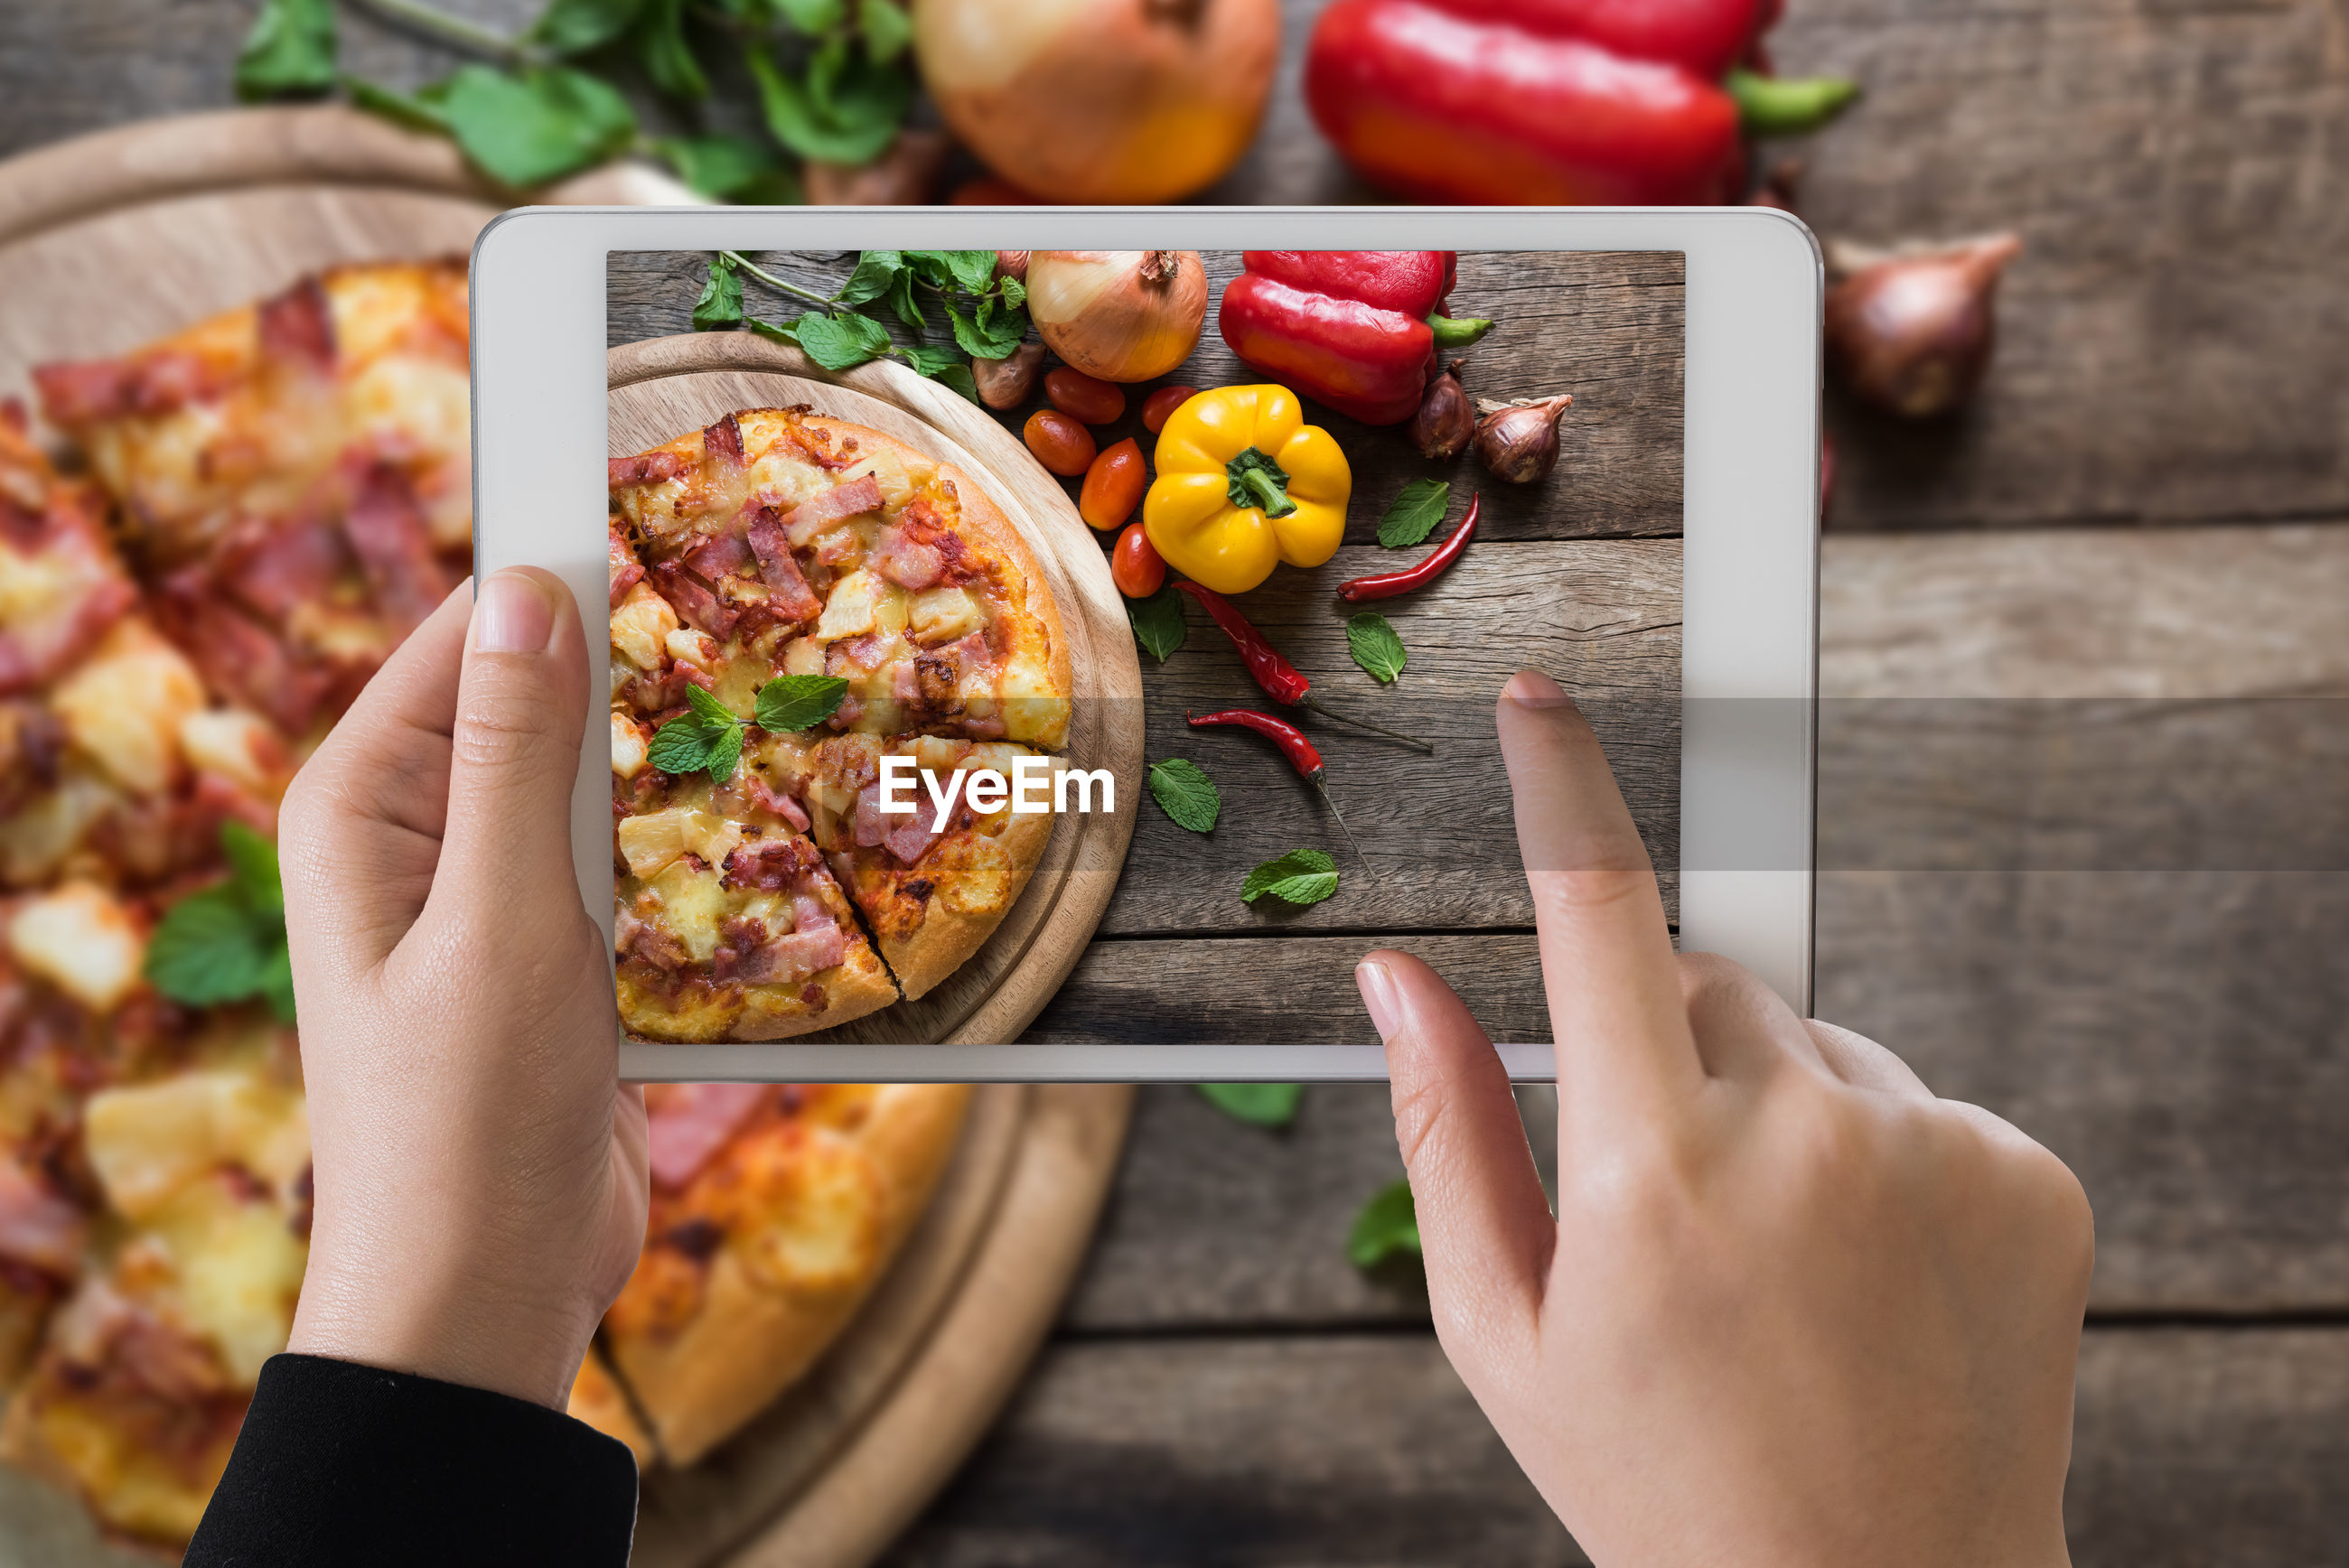 Cropped hand of woman photographing food from digital tablet on table